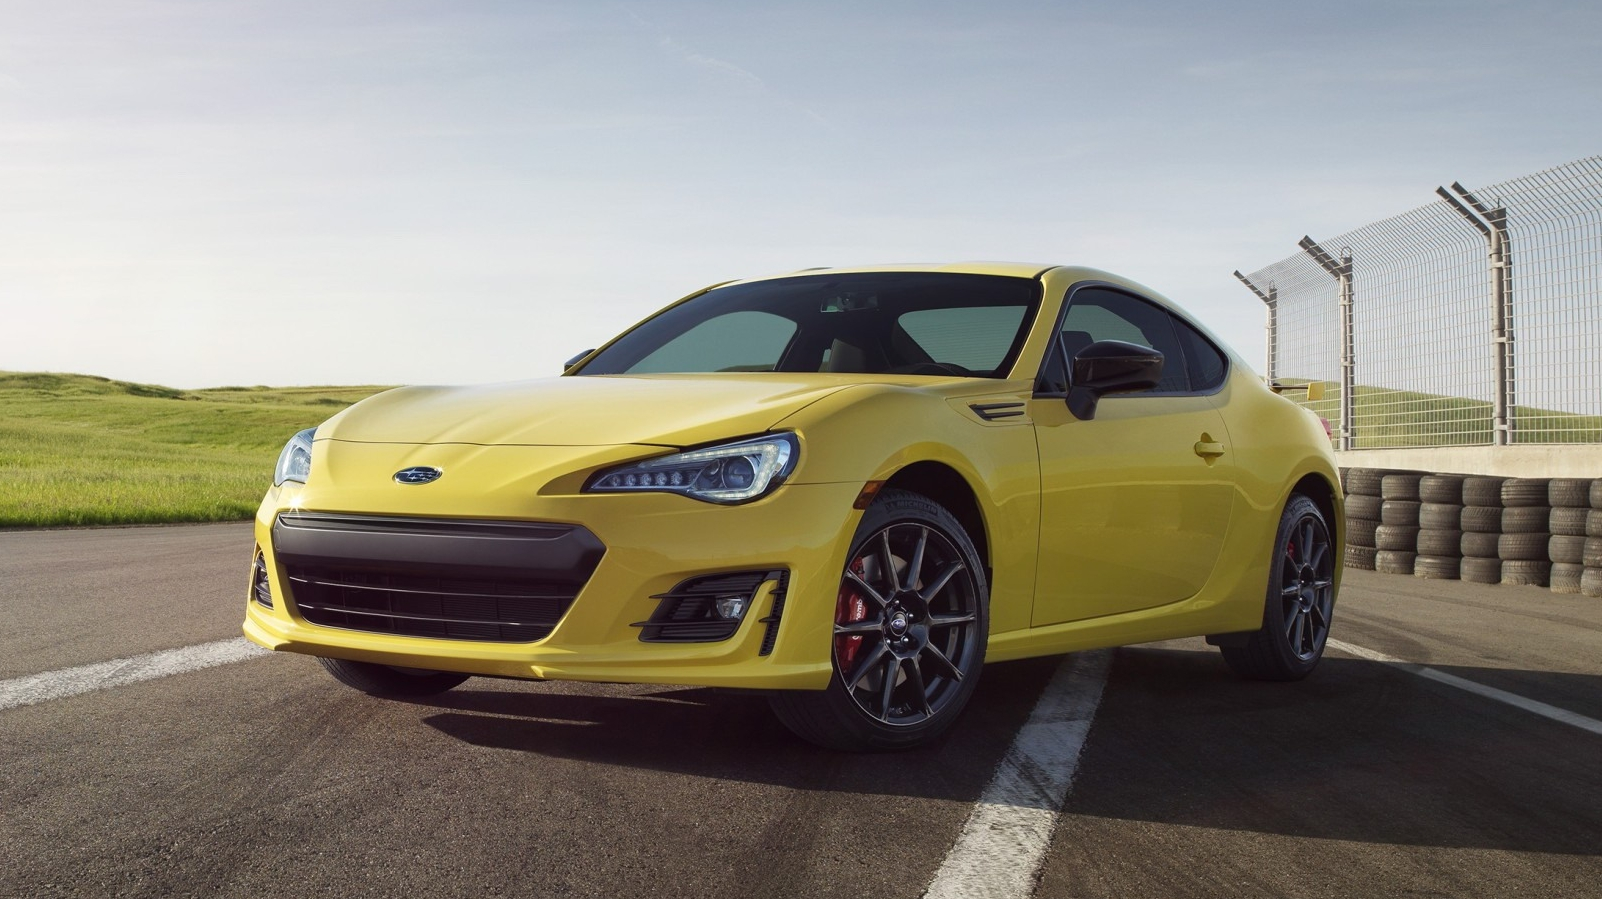 2017 Subaru Brz Series Yellow Special Edition Pictures Photos